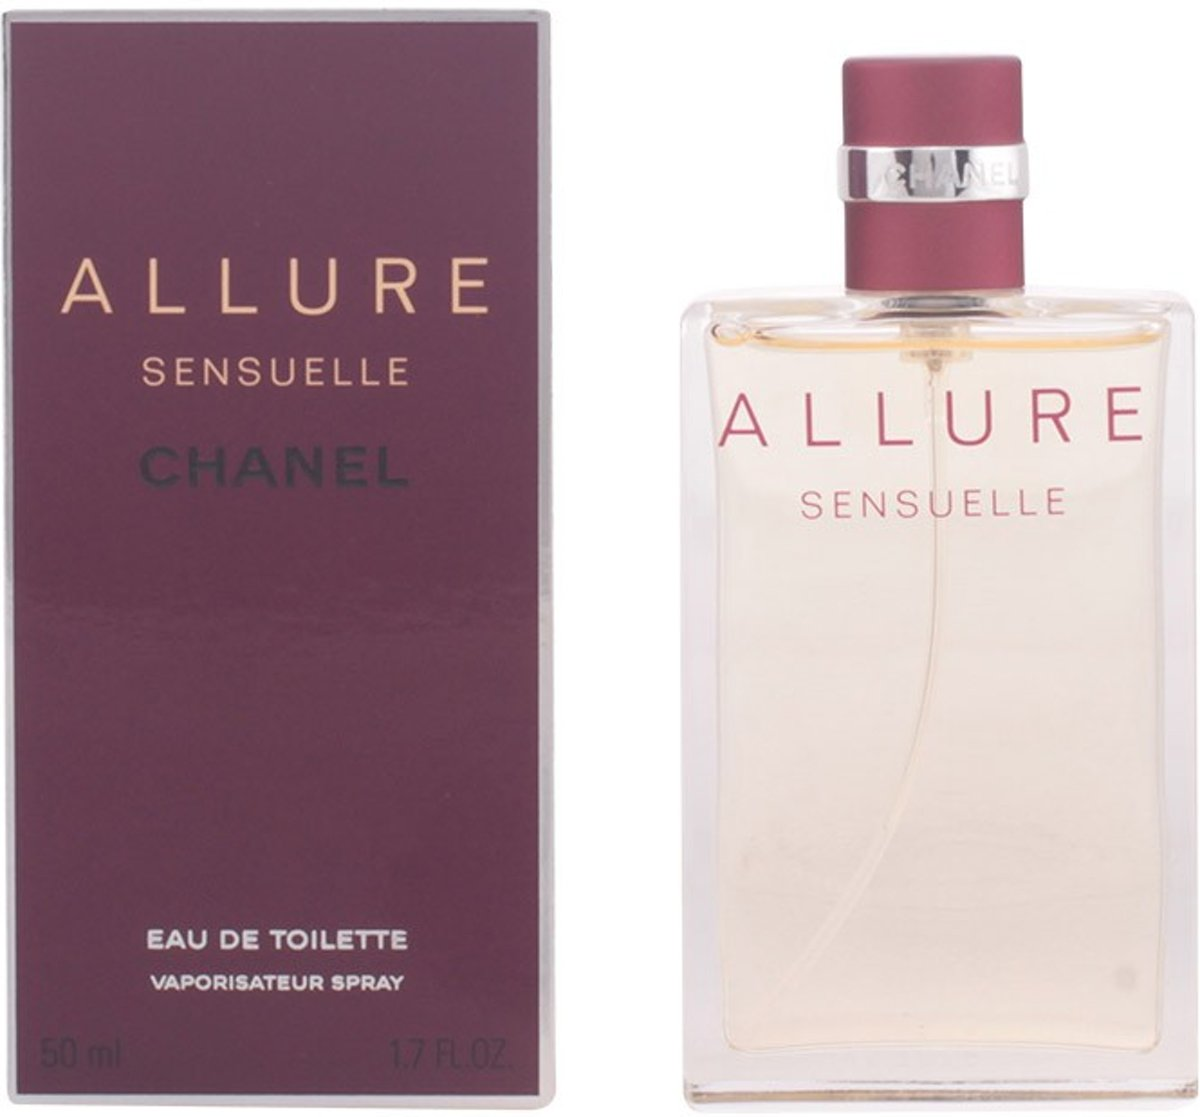 MULTI BUNDEL 2 stuks ALLURE SENSUELLE Eau de Toilette Spray 50 ml